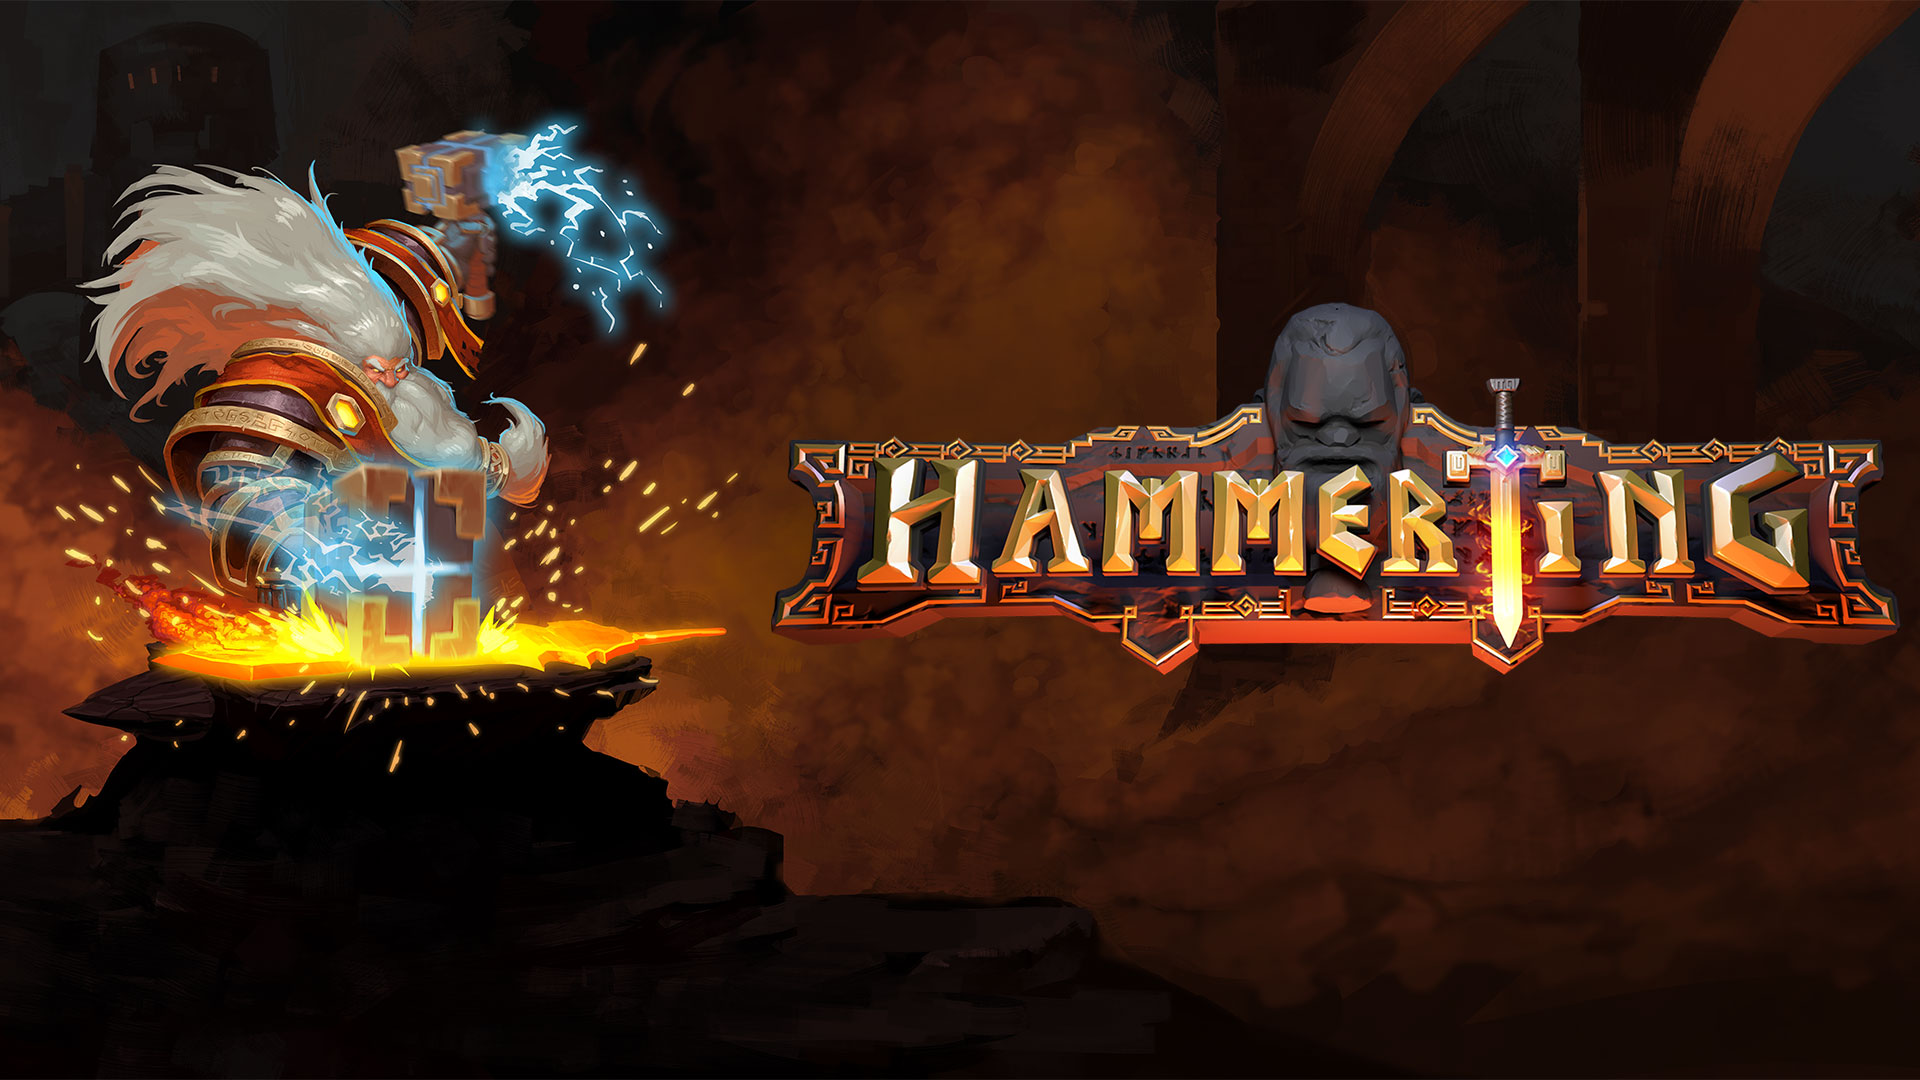 Introducing Hammerting!